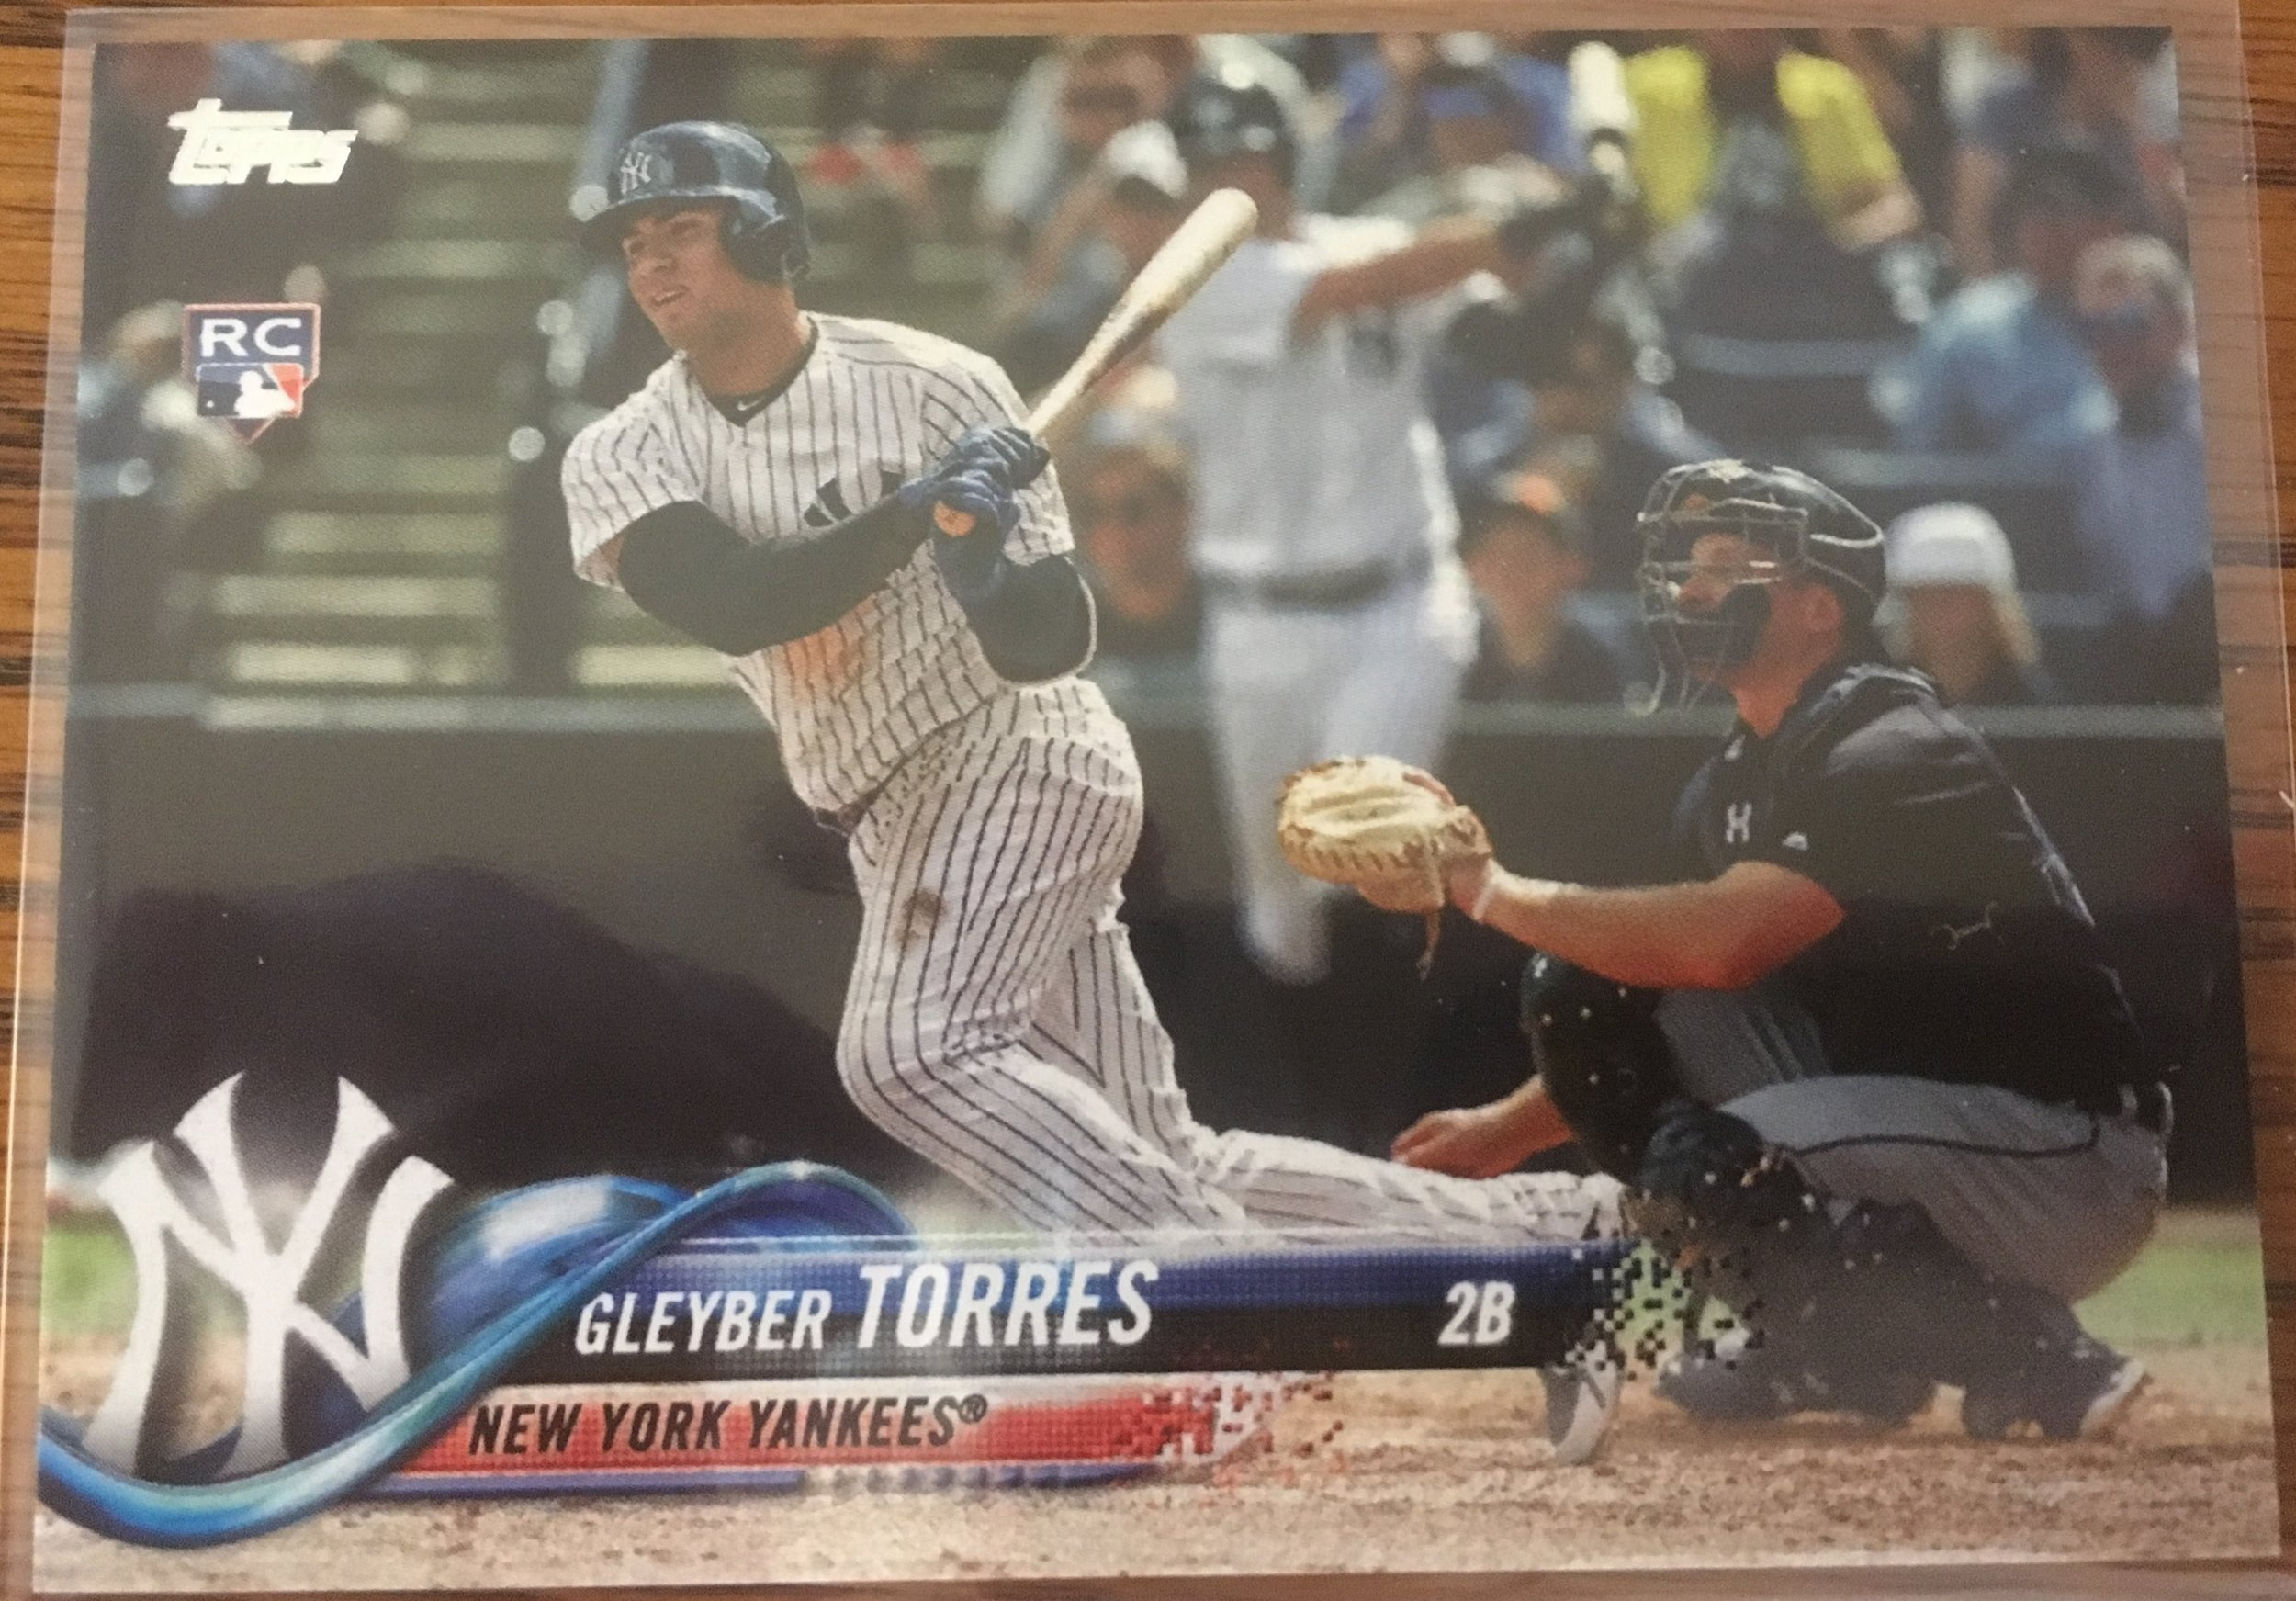 2018 Topps Series 2 Gleyber Torres RC SP #699